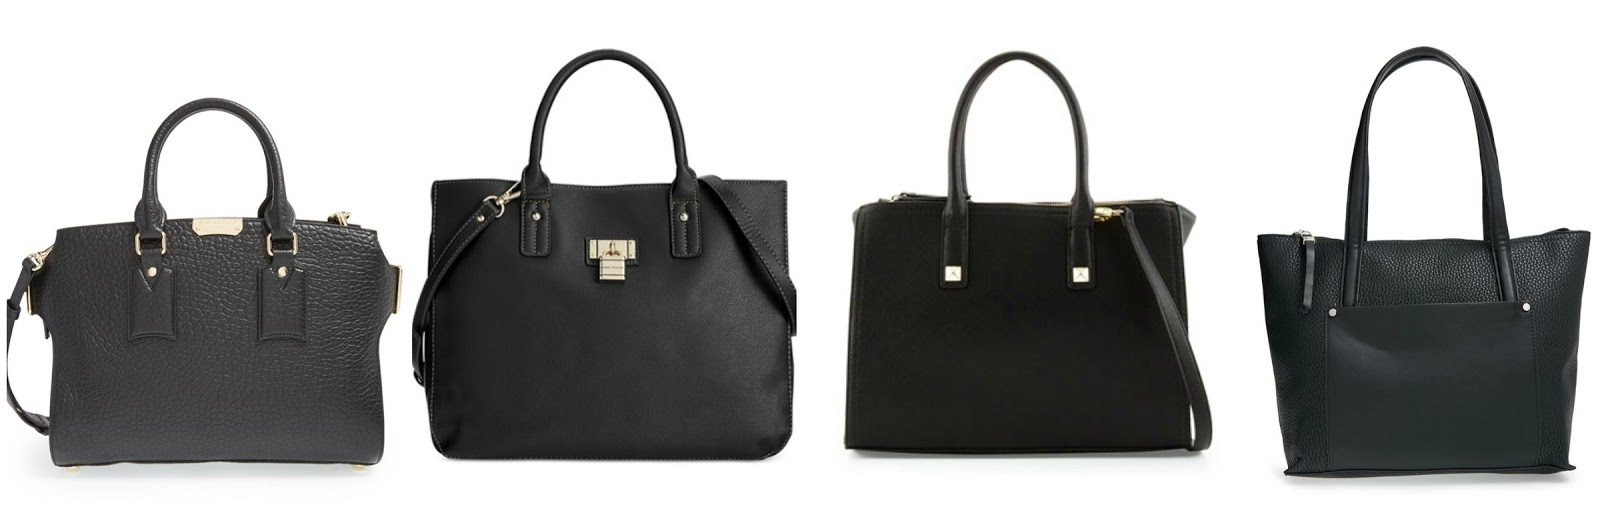 One Of These Tote Handbags Is From Burberry For 1 895 And The Other Three Are Under